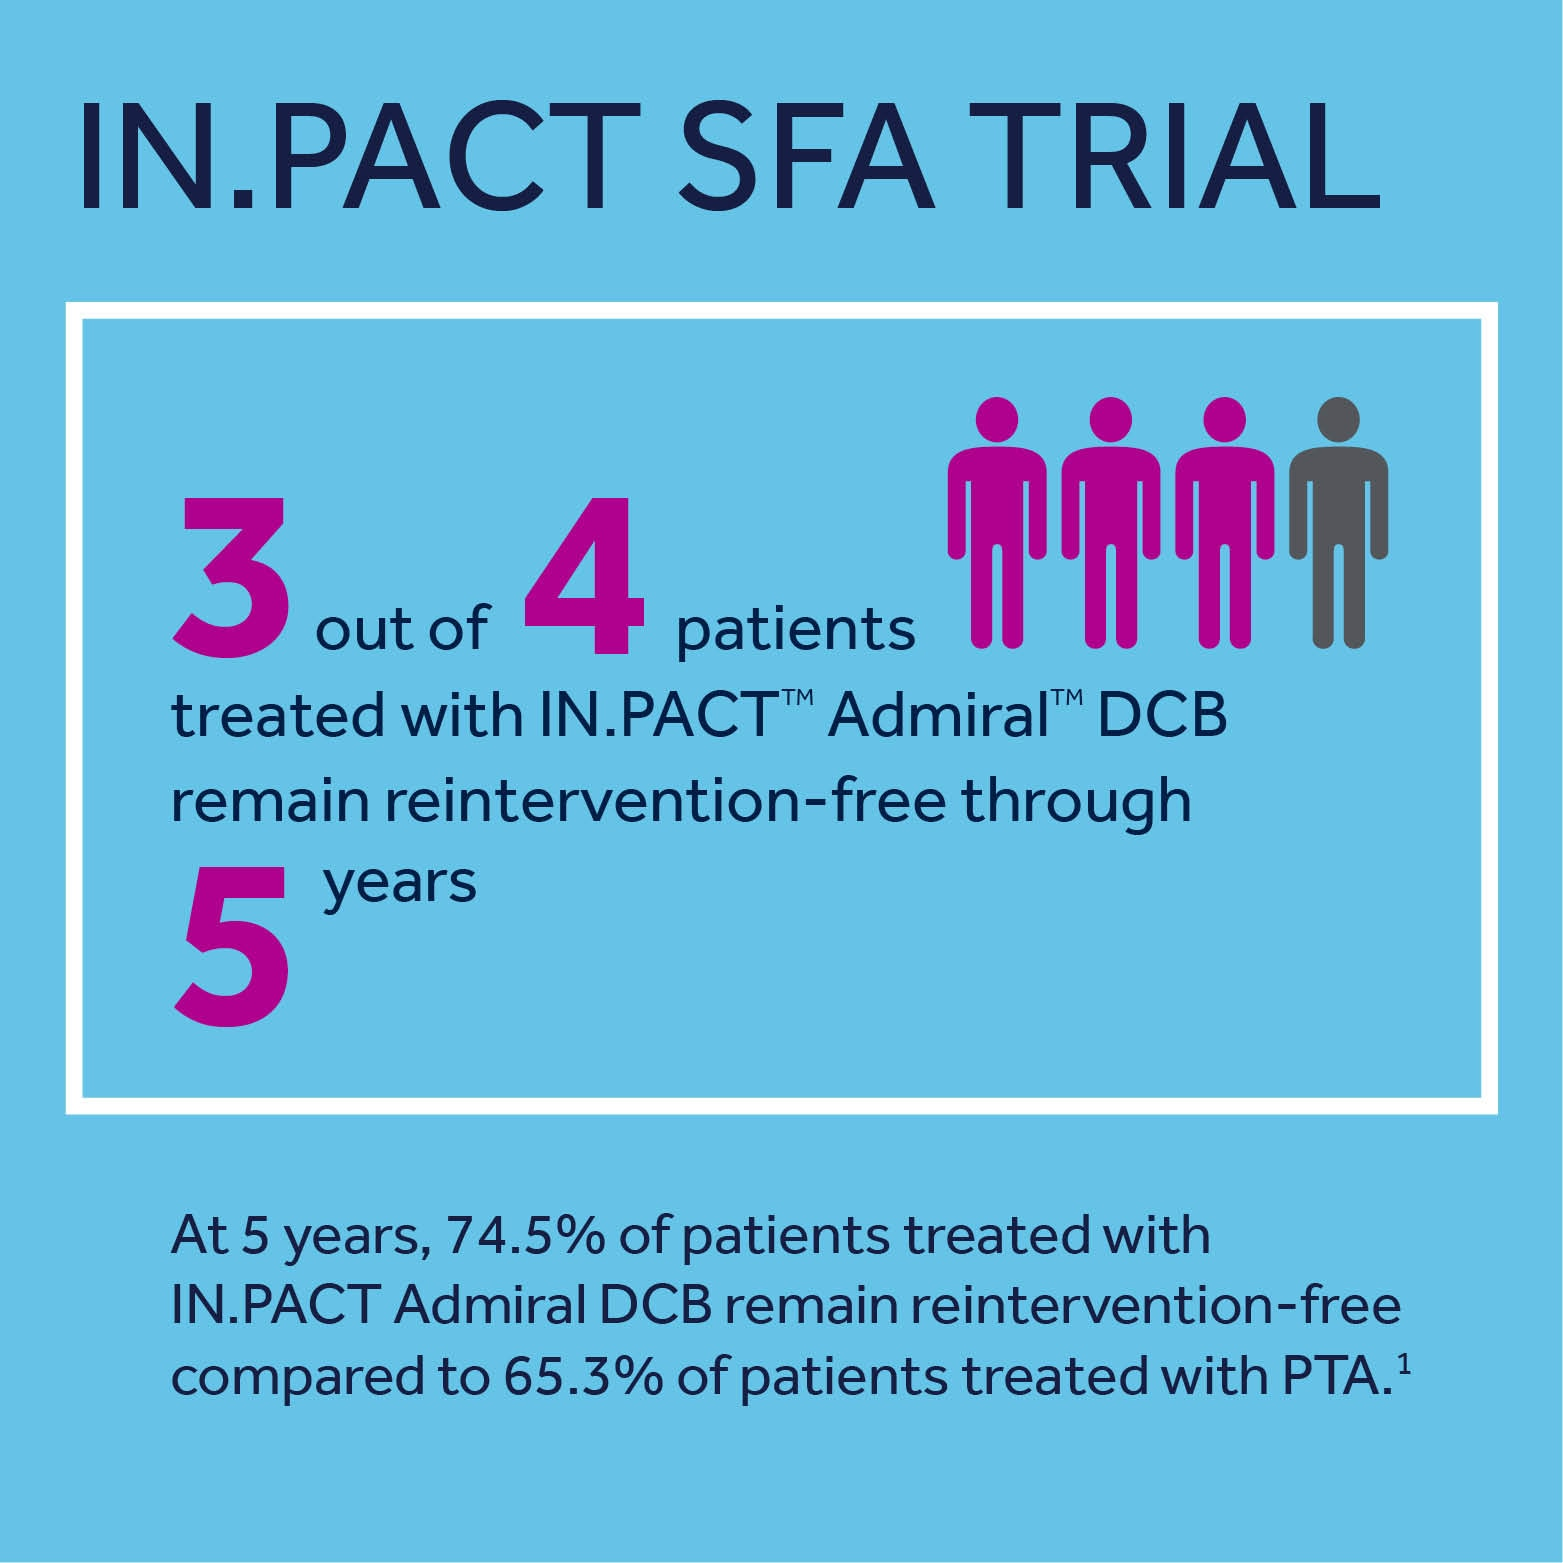 IN.PACT SFA Study 3 out of 4 patient treated with IN.PACT Admiral DCB remain reintervention free through 5 years